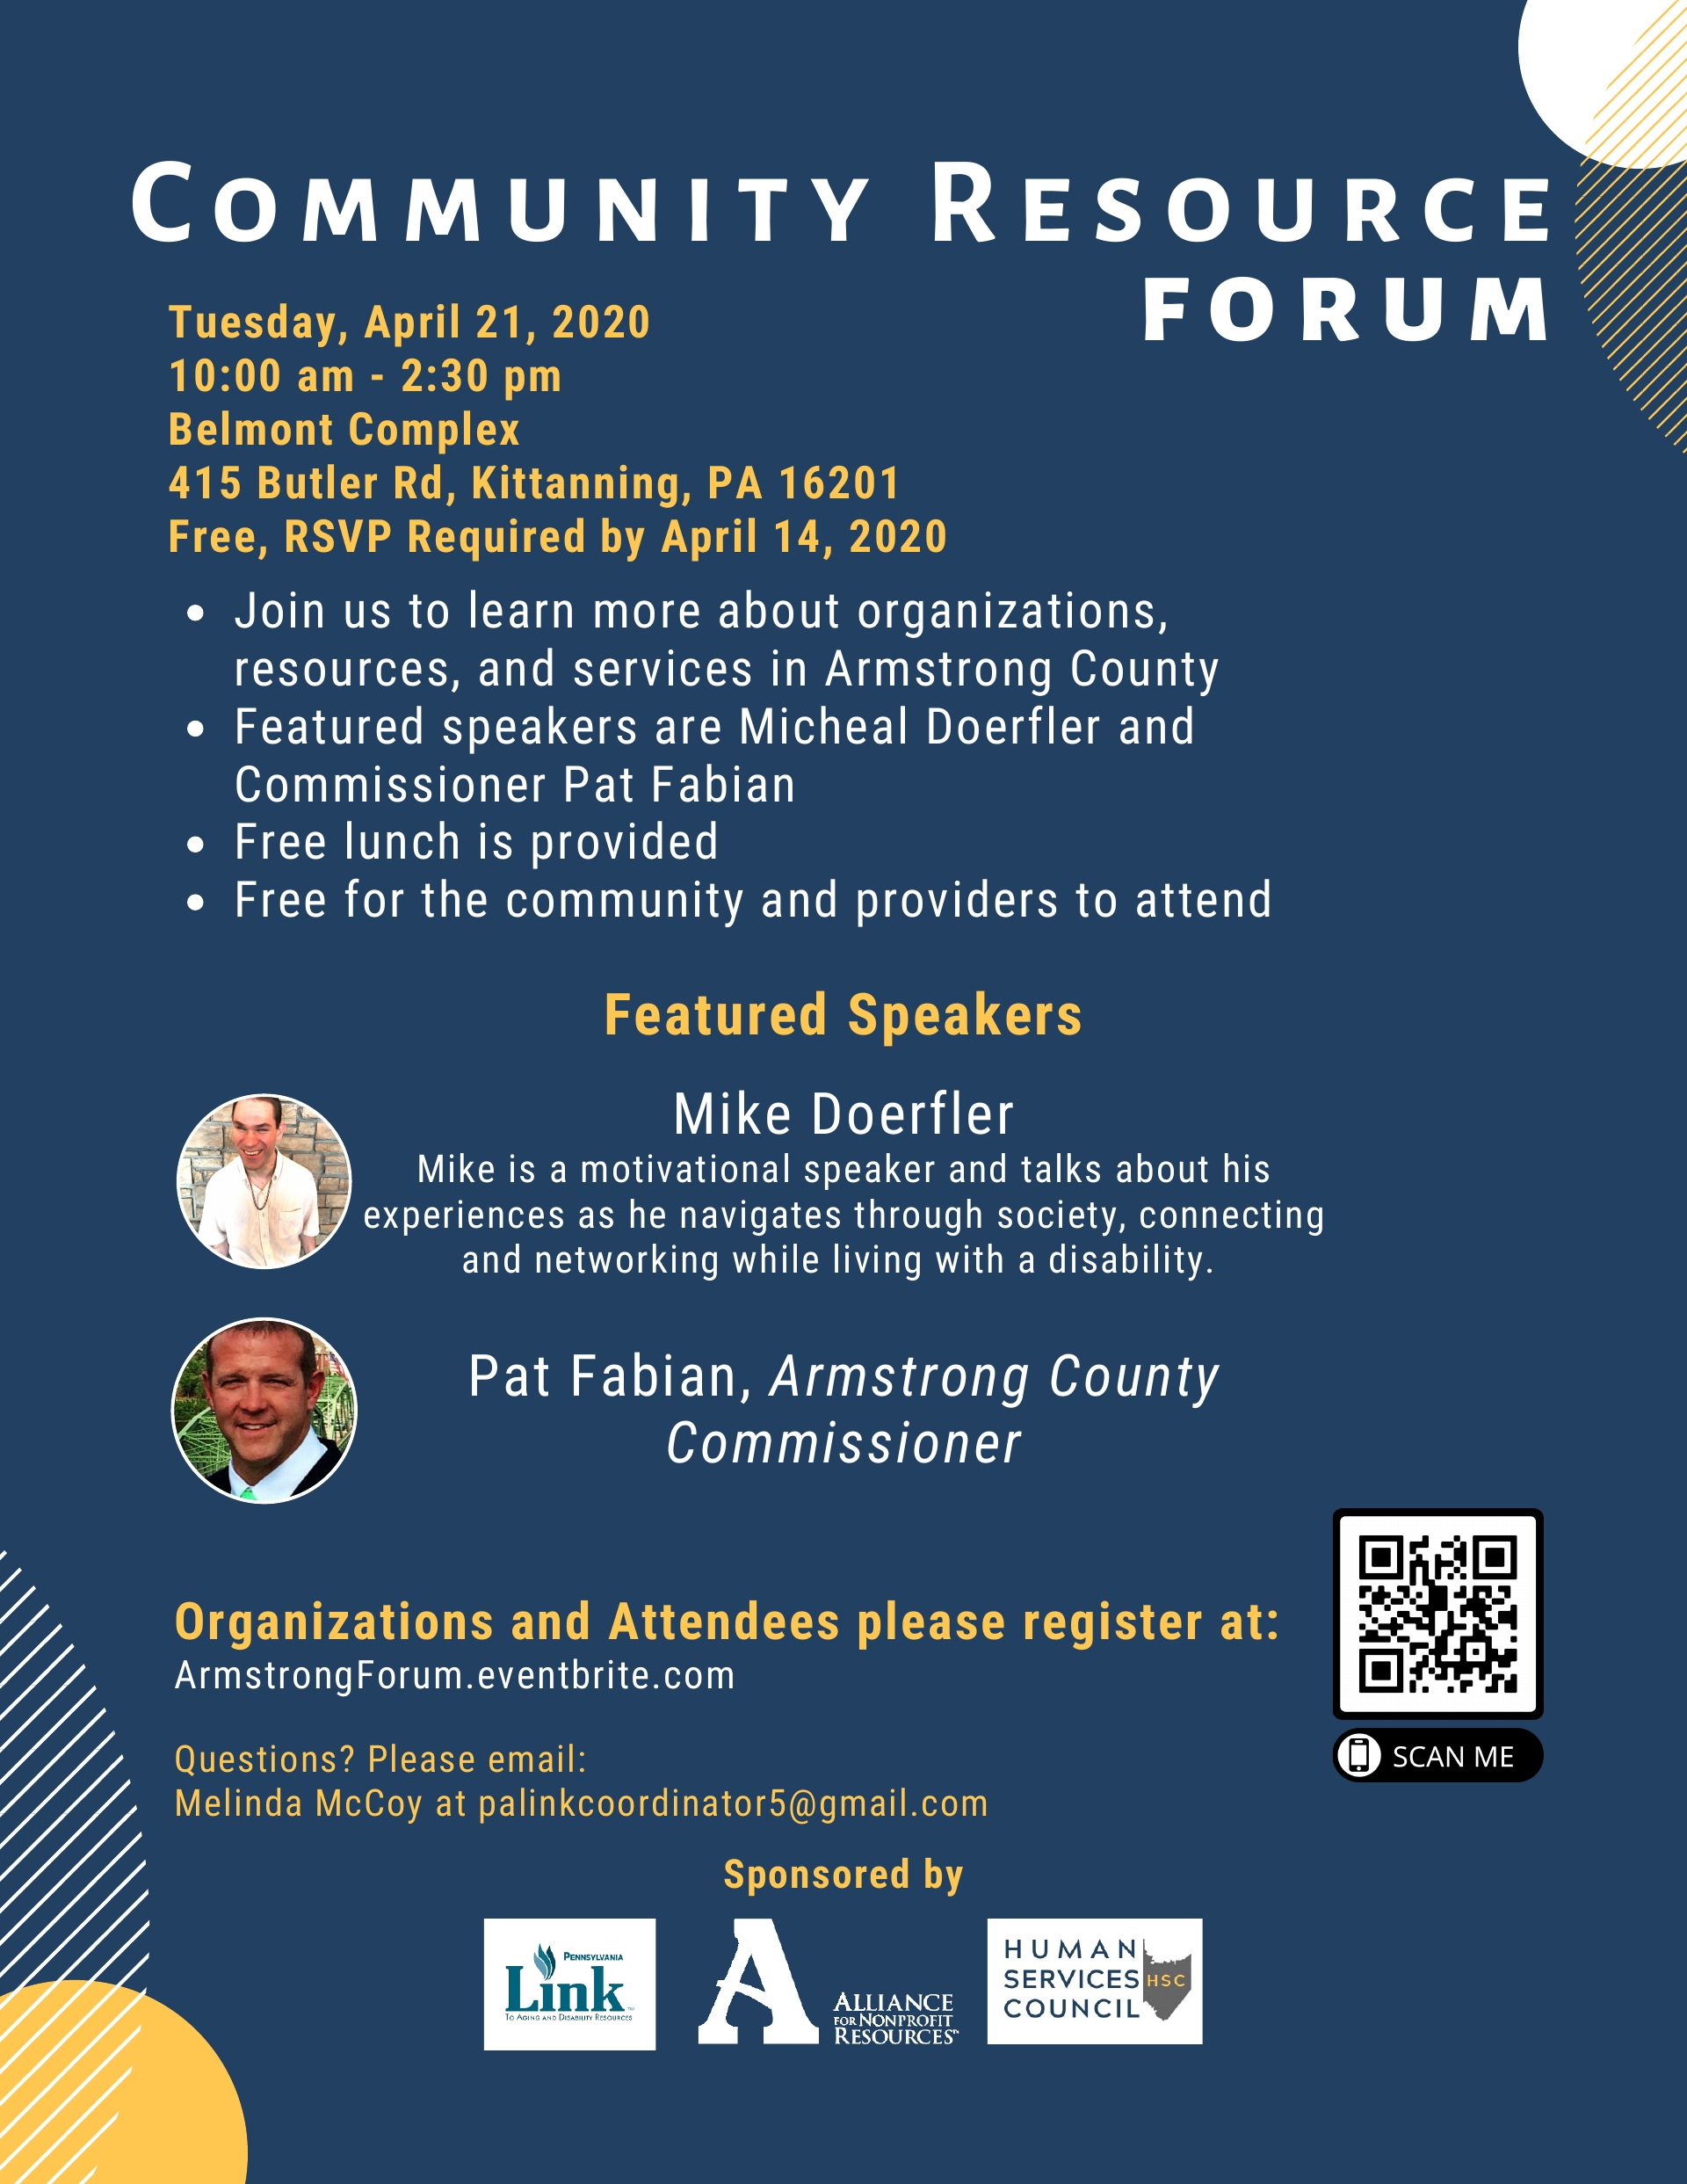 COMMUNITY RESOURCE FORUM Armstrong County April 21, 2020,